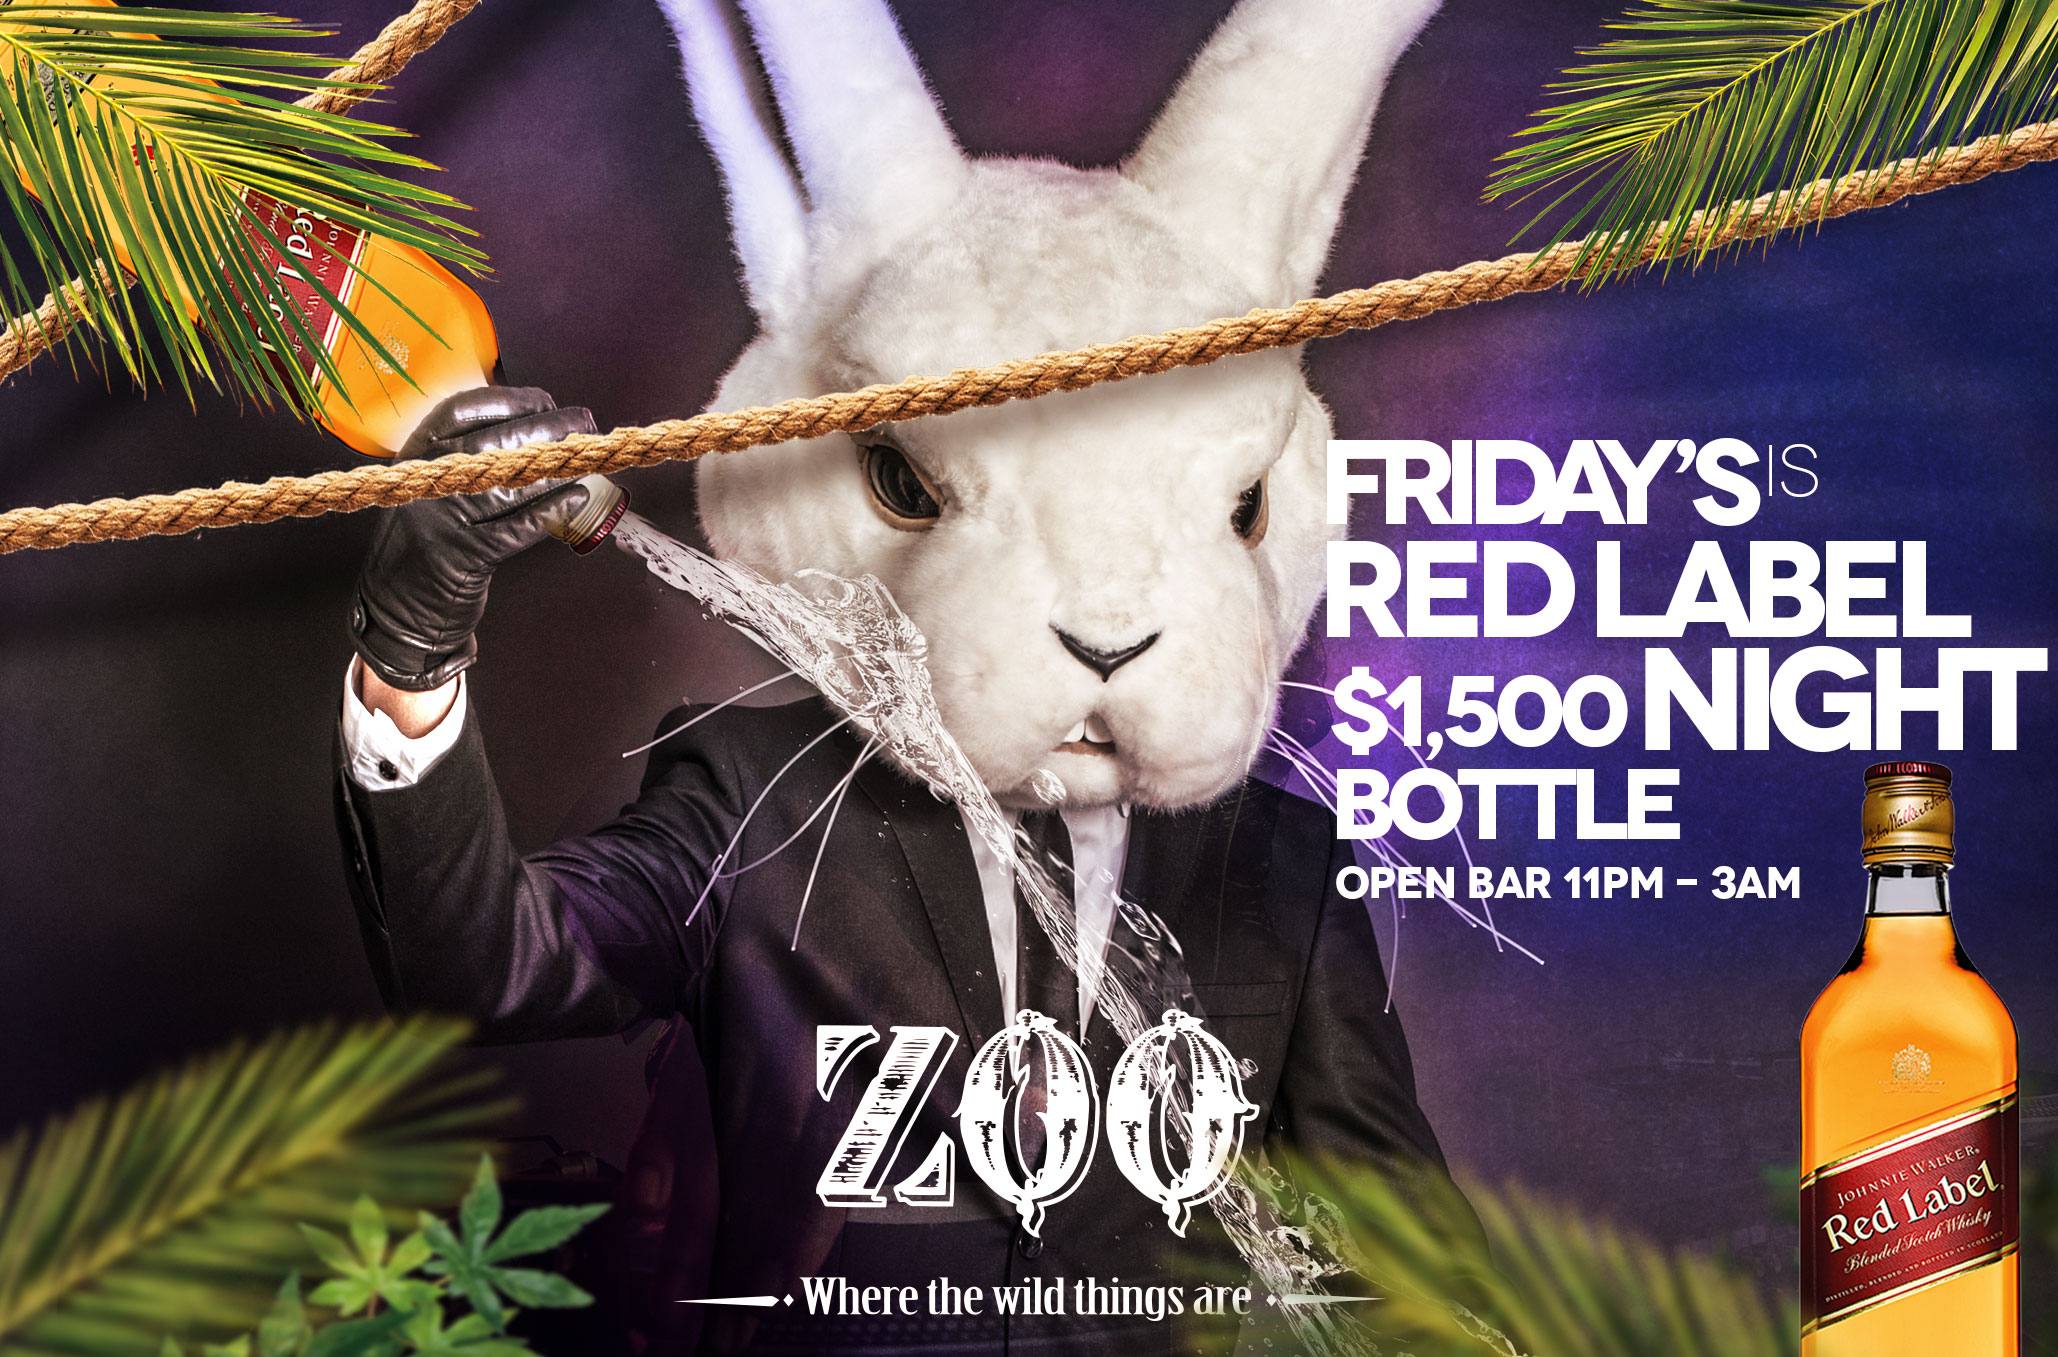 zoo_Red_Label_friday